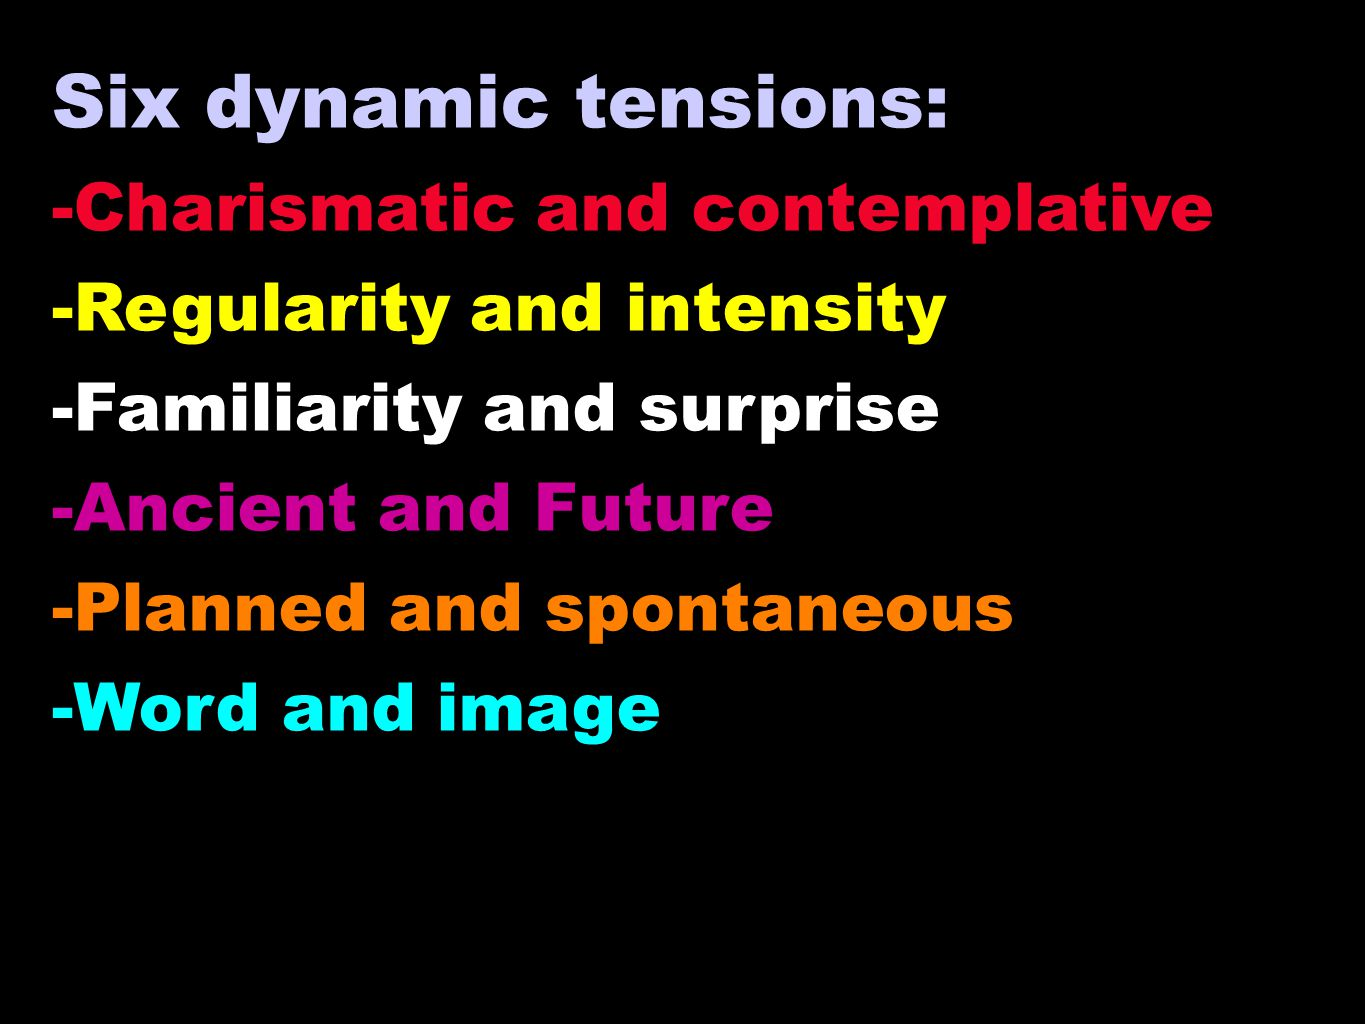 Six dynamic tensions: -Charismatic and contemplative -Regularity and intensity -Familiarity and surprise -Ancient and Future -Planned and spontaneous -Word and image